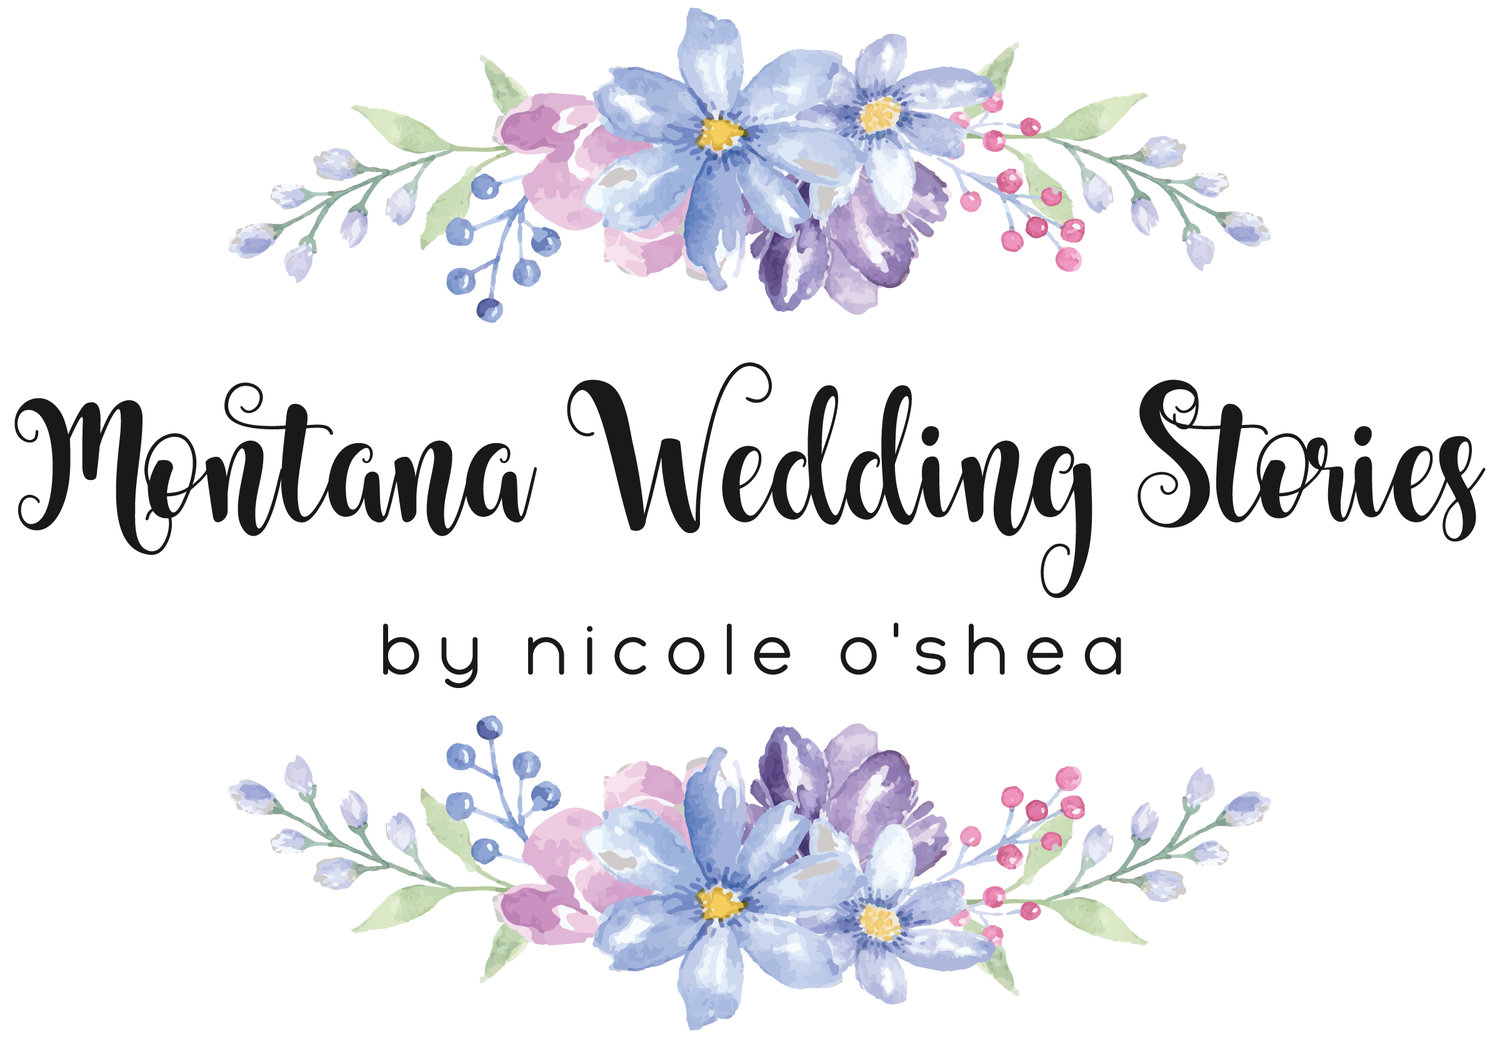 Montana Wedding Stories by Nicole O'Shea